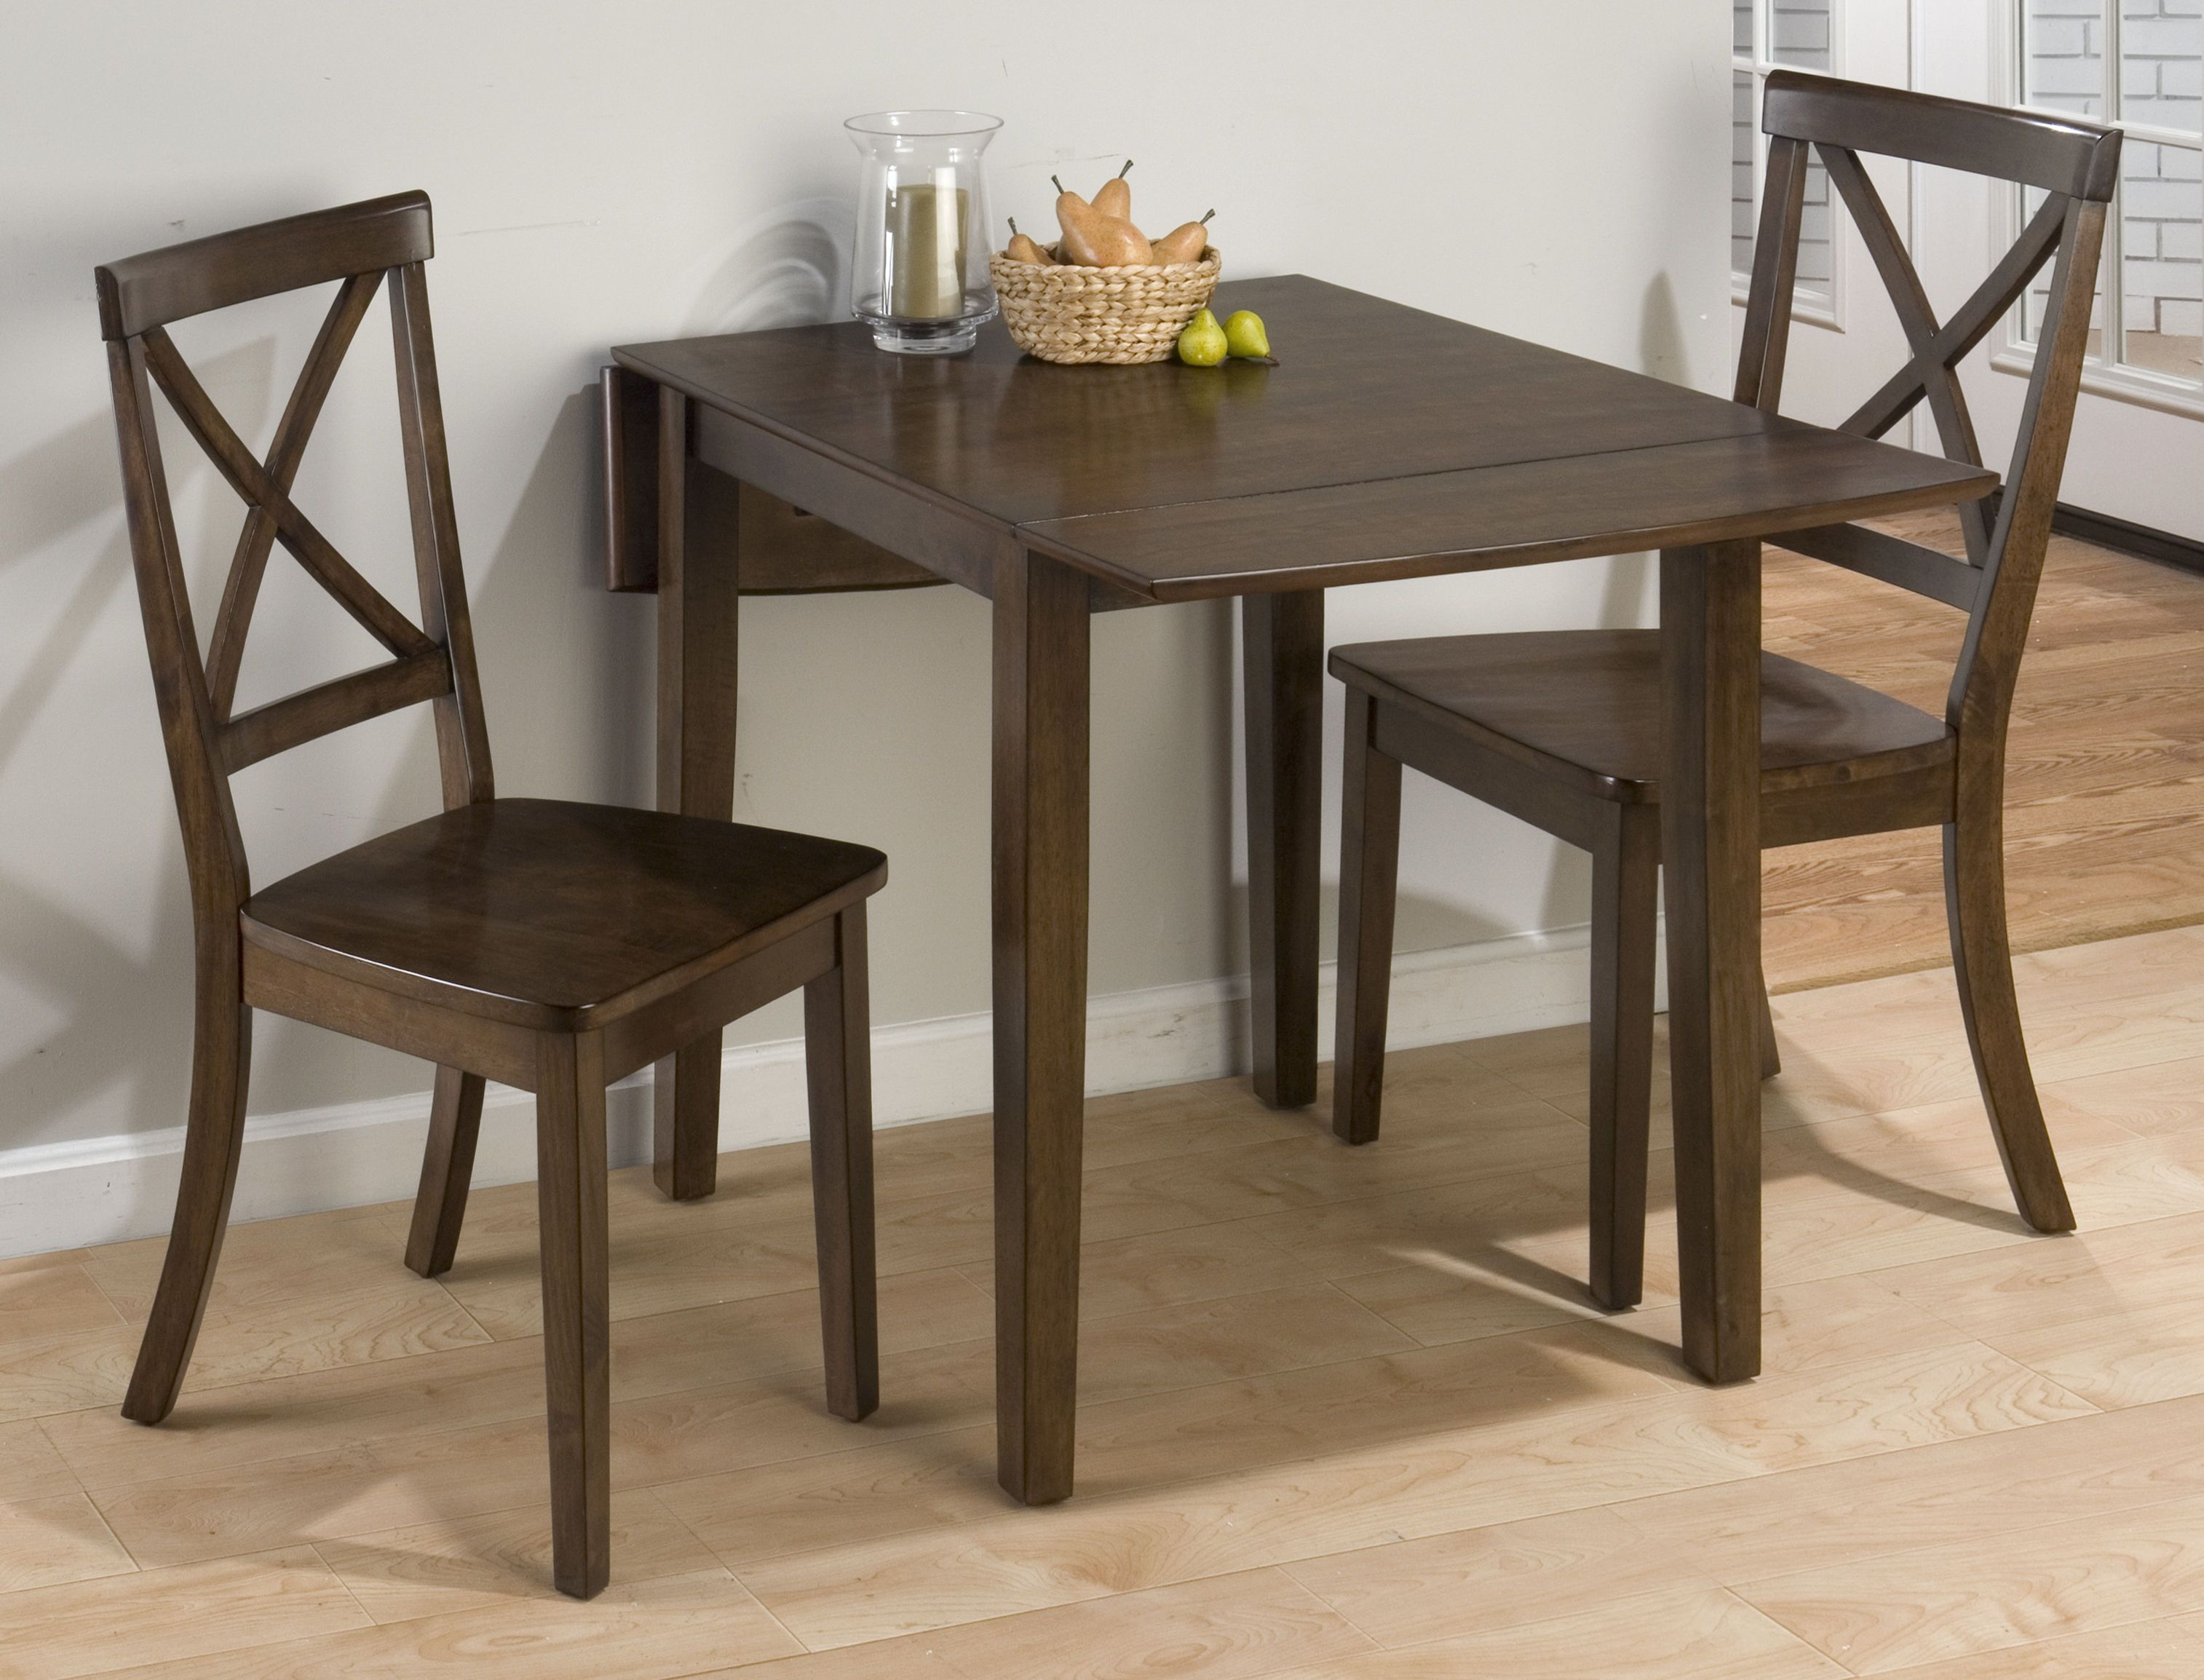 Small Drop Leaf Table For Small House Small Kitchen Tables Dining Table Setting Dining Chairs